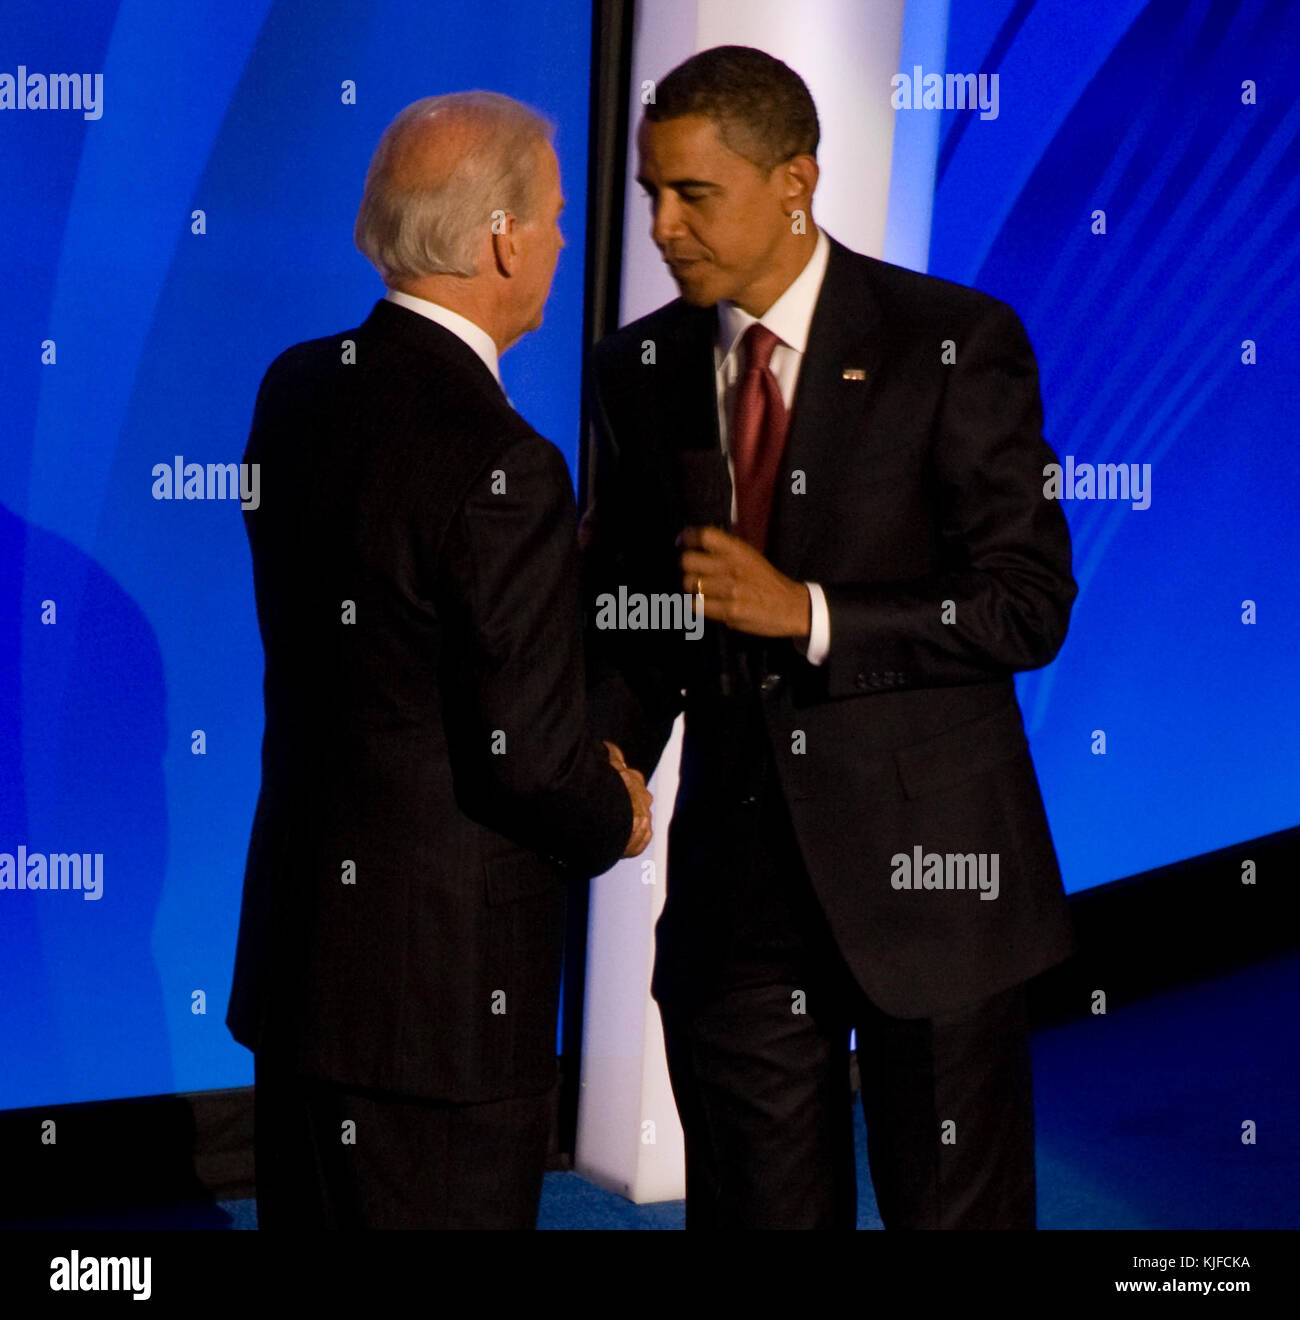 Barack Obama And Joe Biden 2008 Dnc 01 Cropped1 Stock Photo Alamy